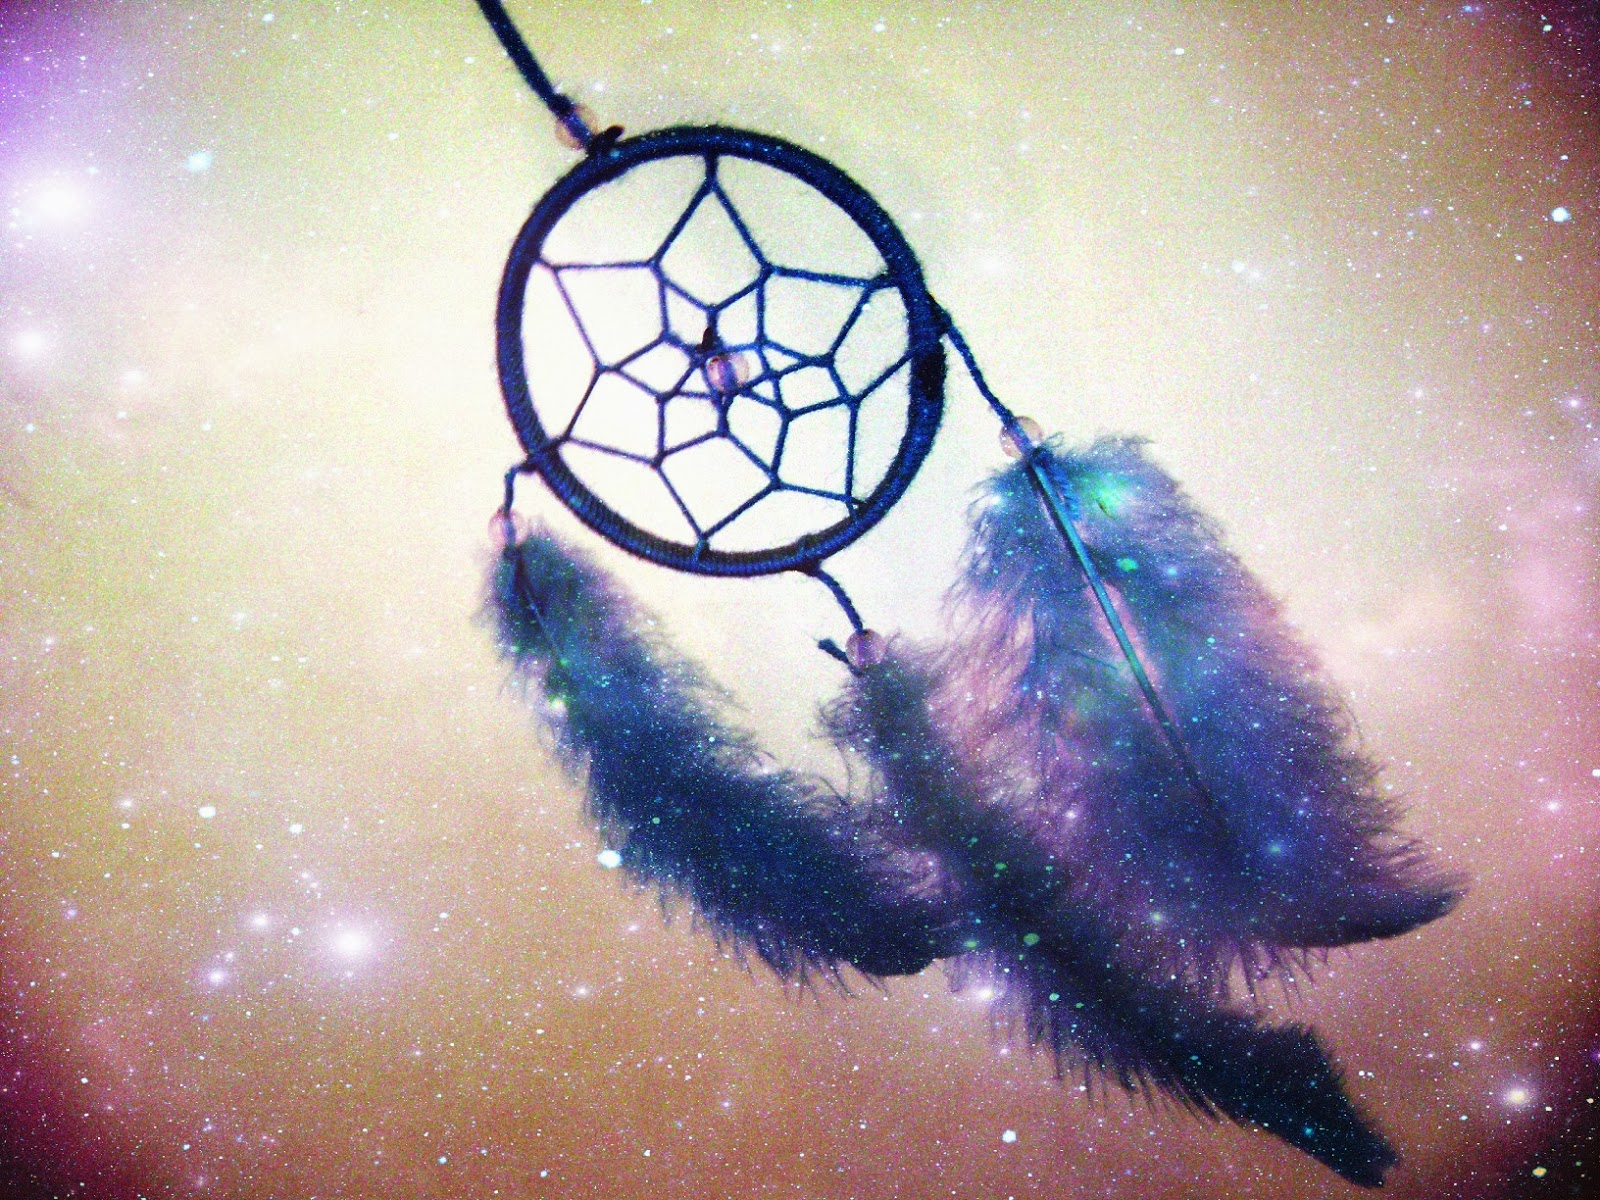 beautiful dreamcatcher wallpapers HD You can take it as background 1600x1200